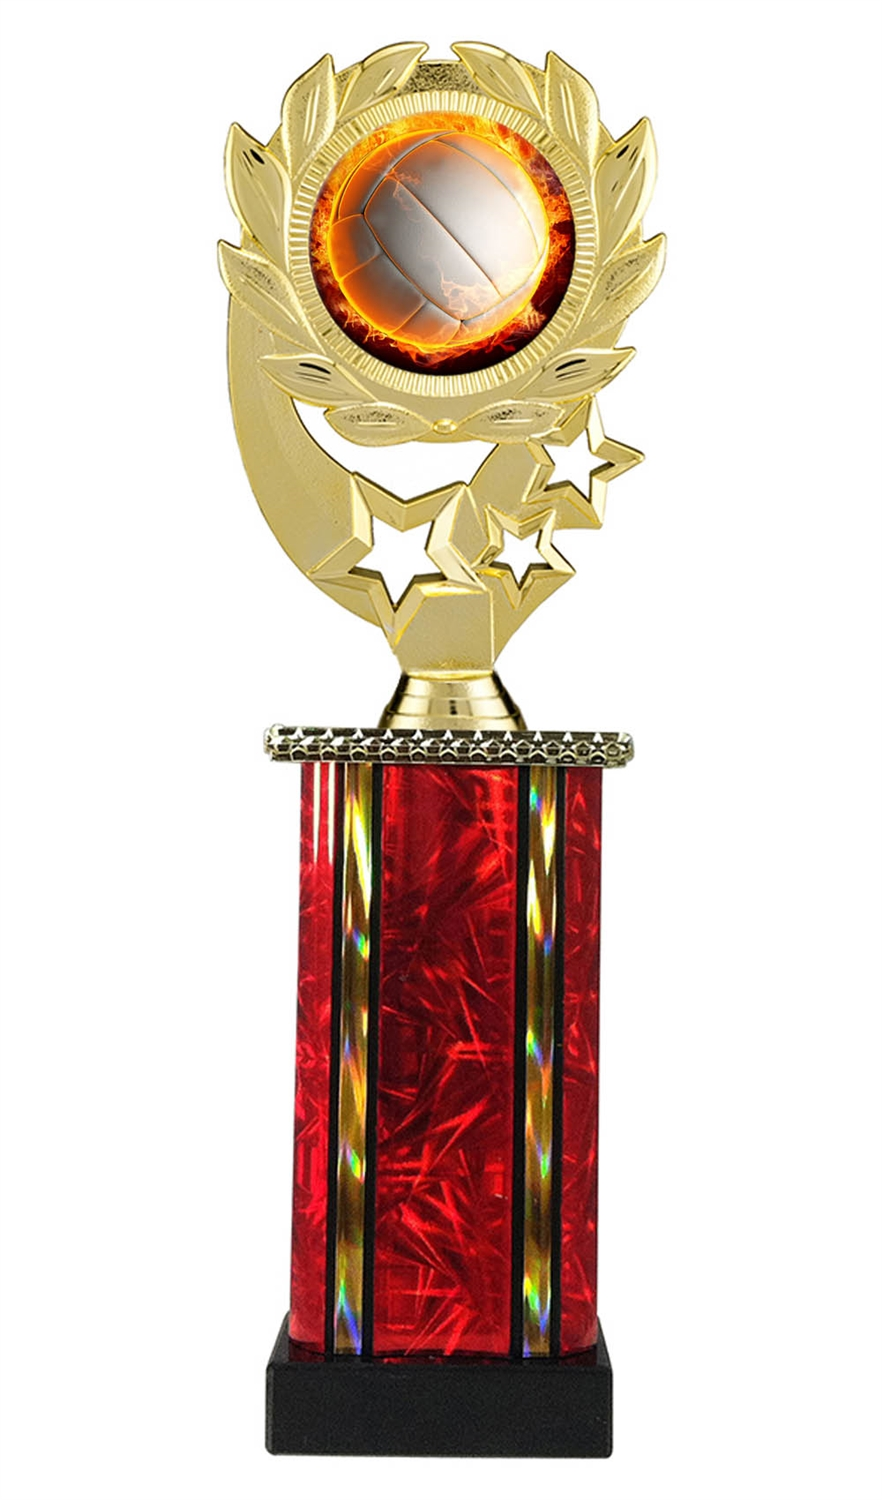 Moonbeam Wreath MLM Volleyball Trophy in 11 Colors - in 3 Sizes